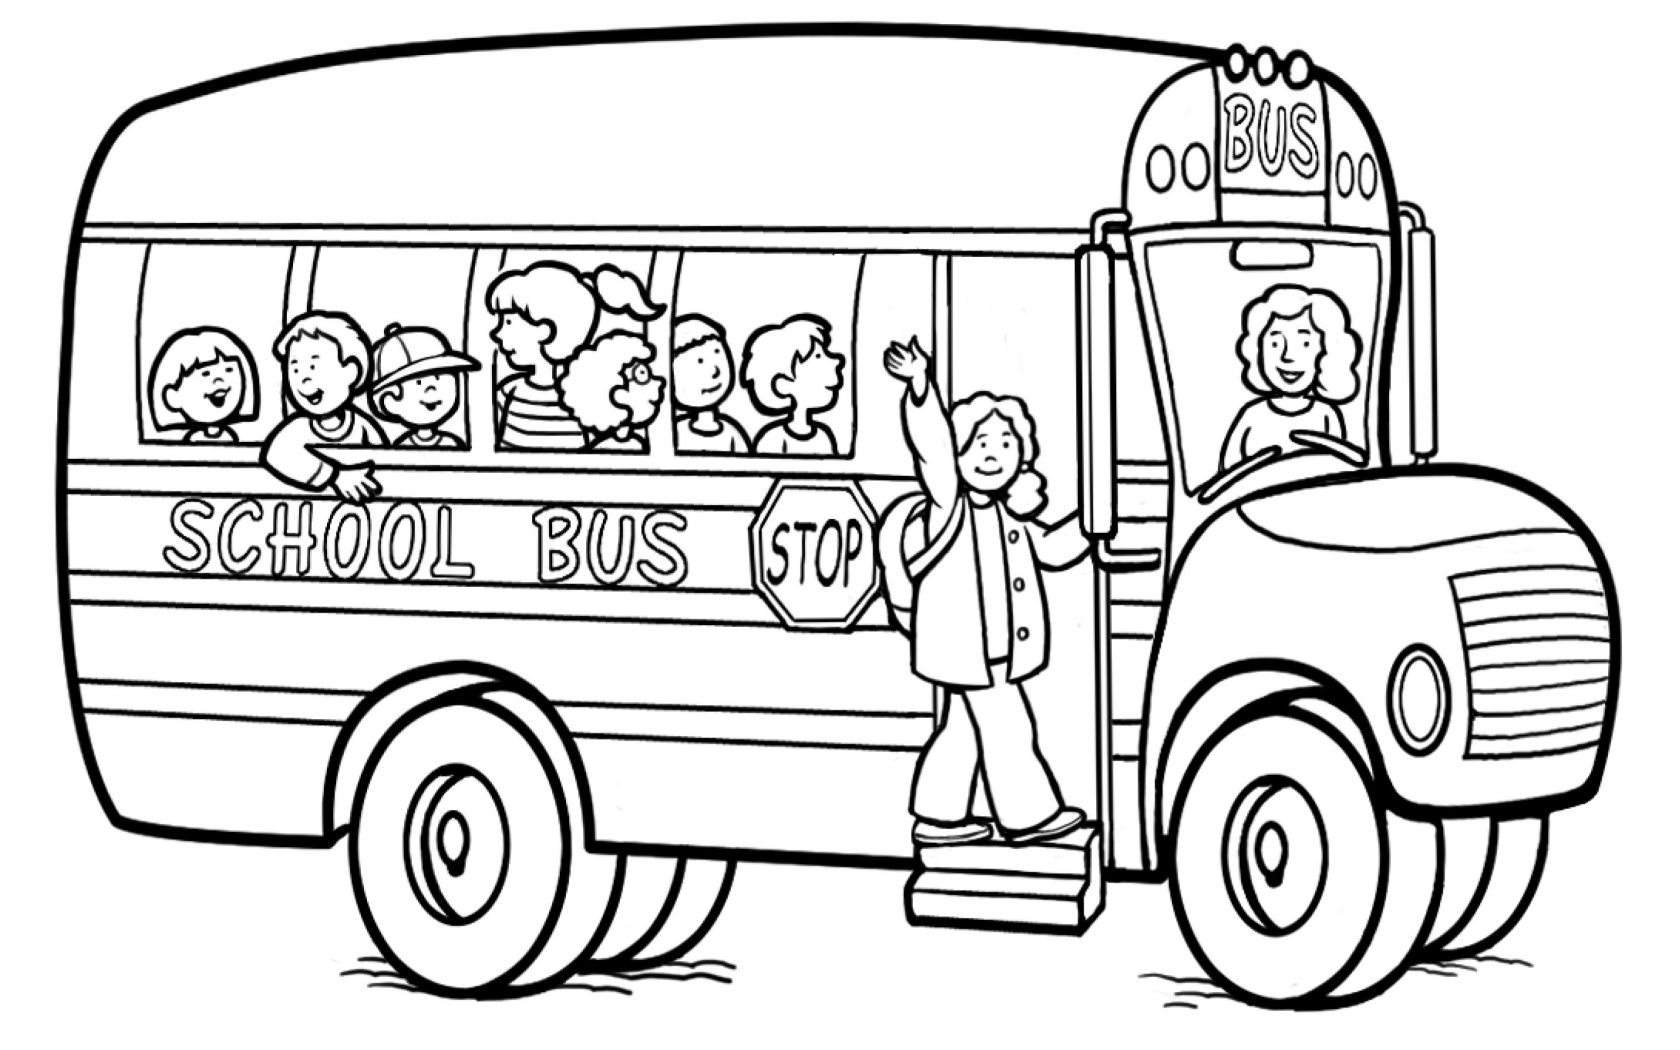 1680x1050 Urgent Wheels On The Bus Coloring Page School